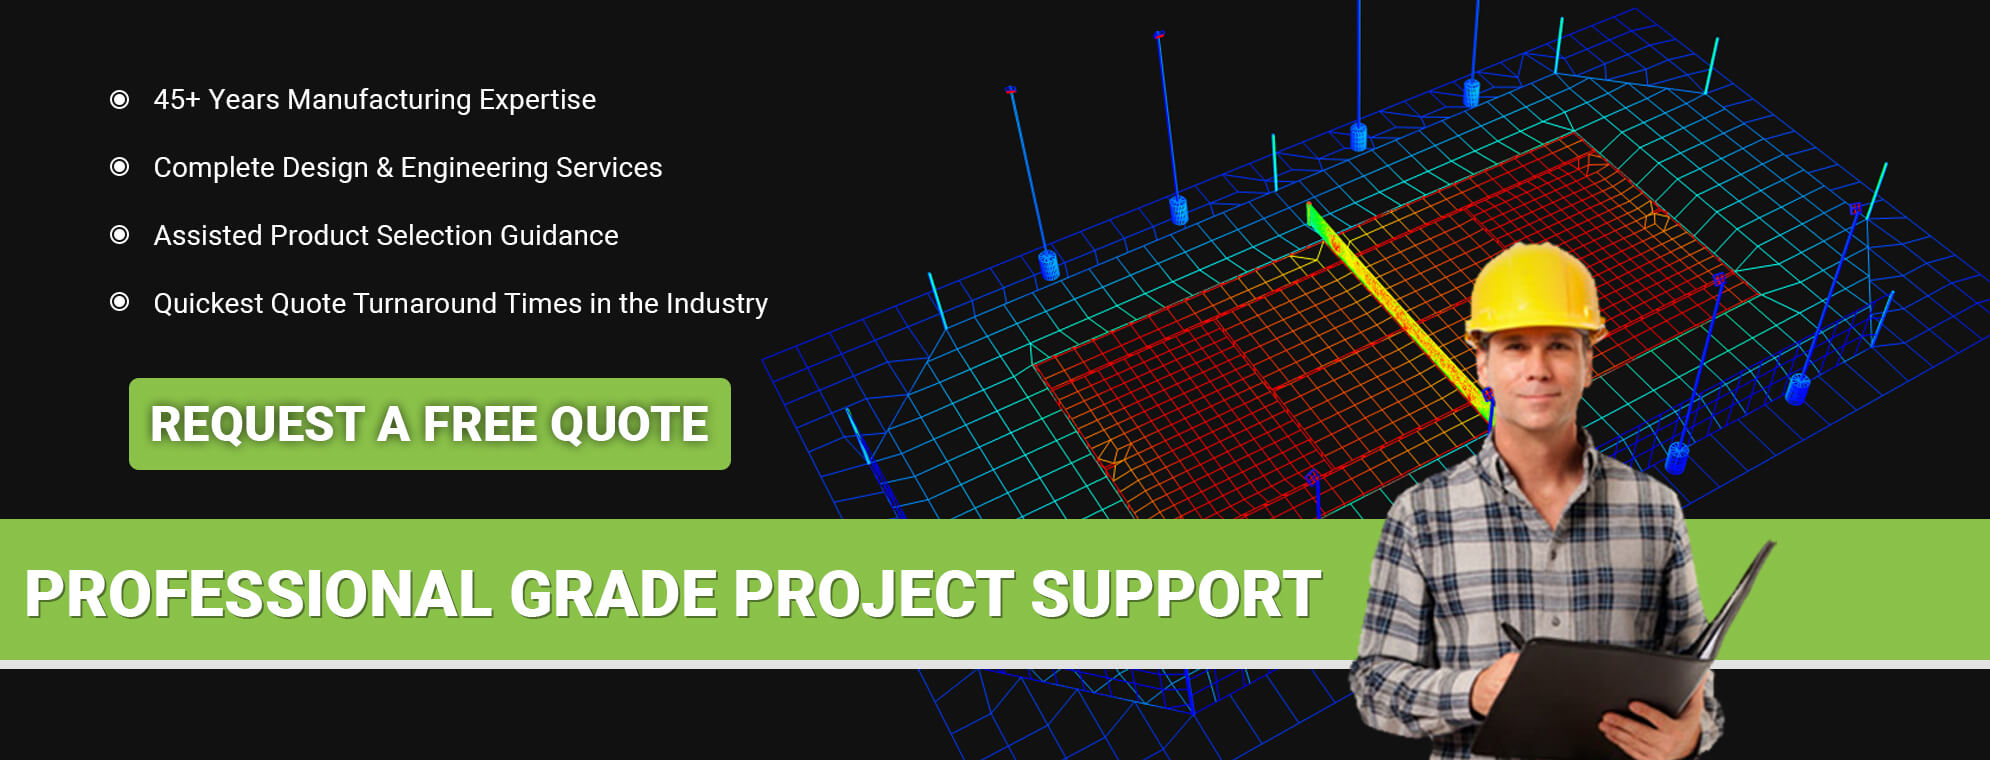 Professional Grade Project Support - Request A Free Quote